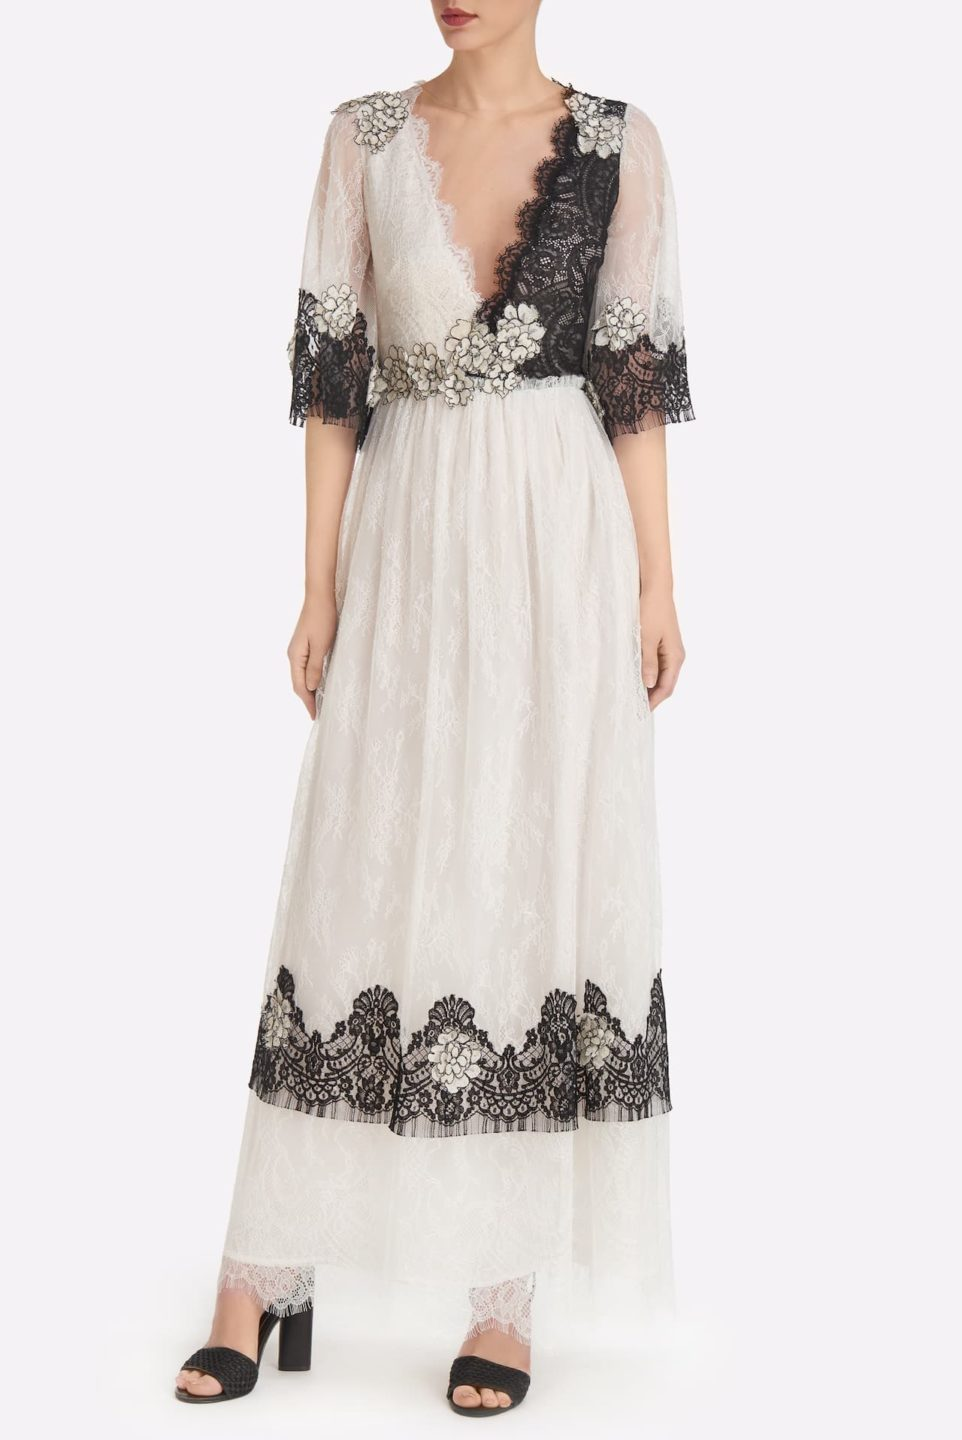 Mardenne SS2135 White & Black Chantilly Lace Surplice Dress with Flower Appliques and three-quarter sleeves